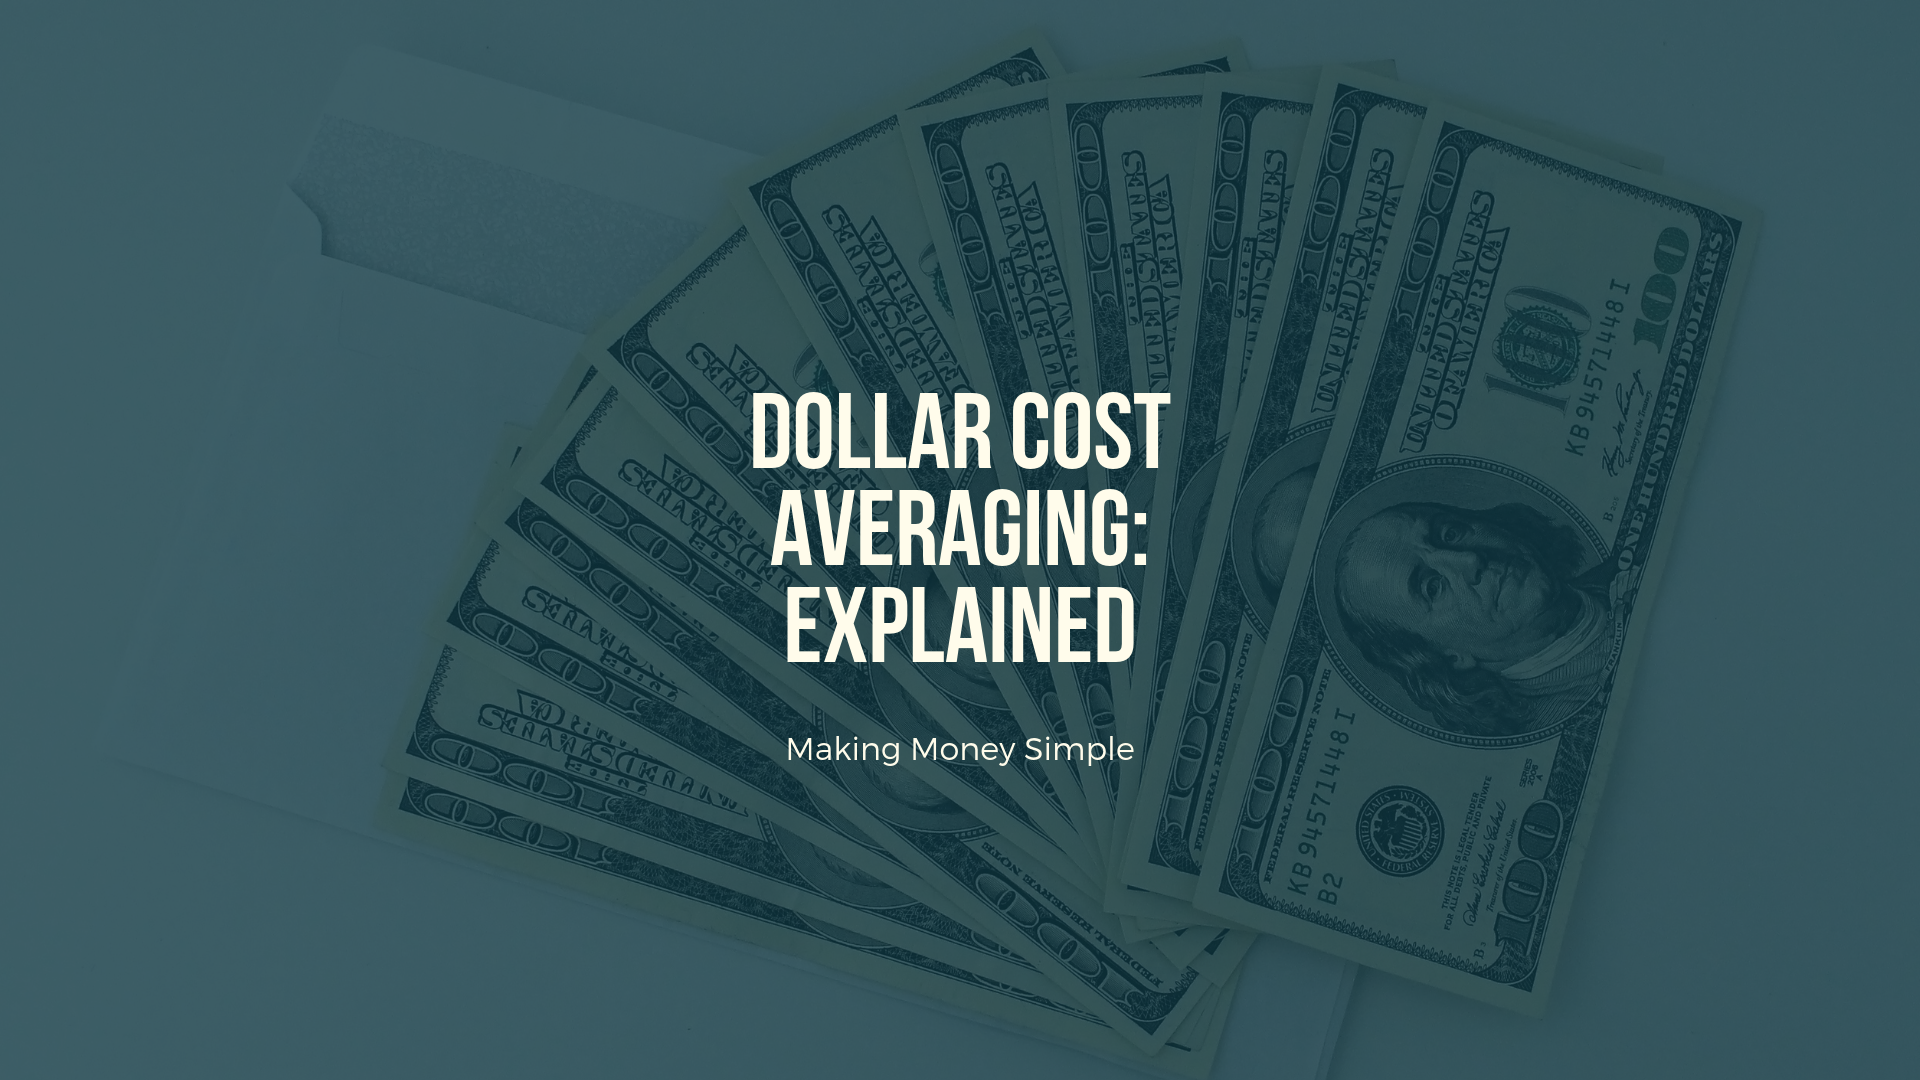 Dollar Cost Averaging: Explained